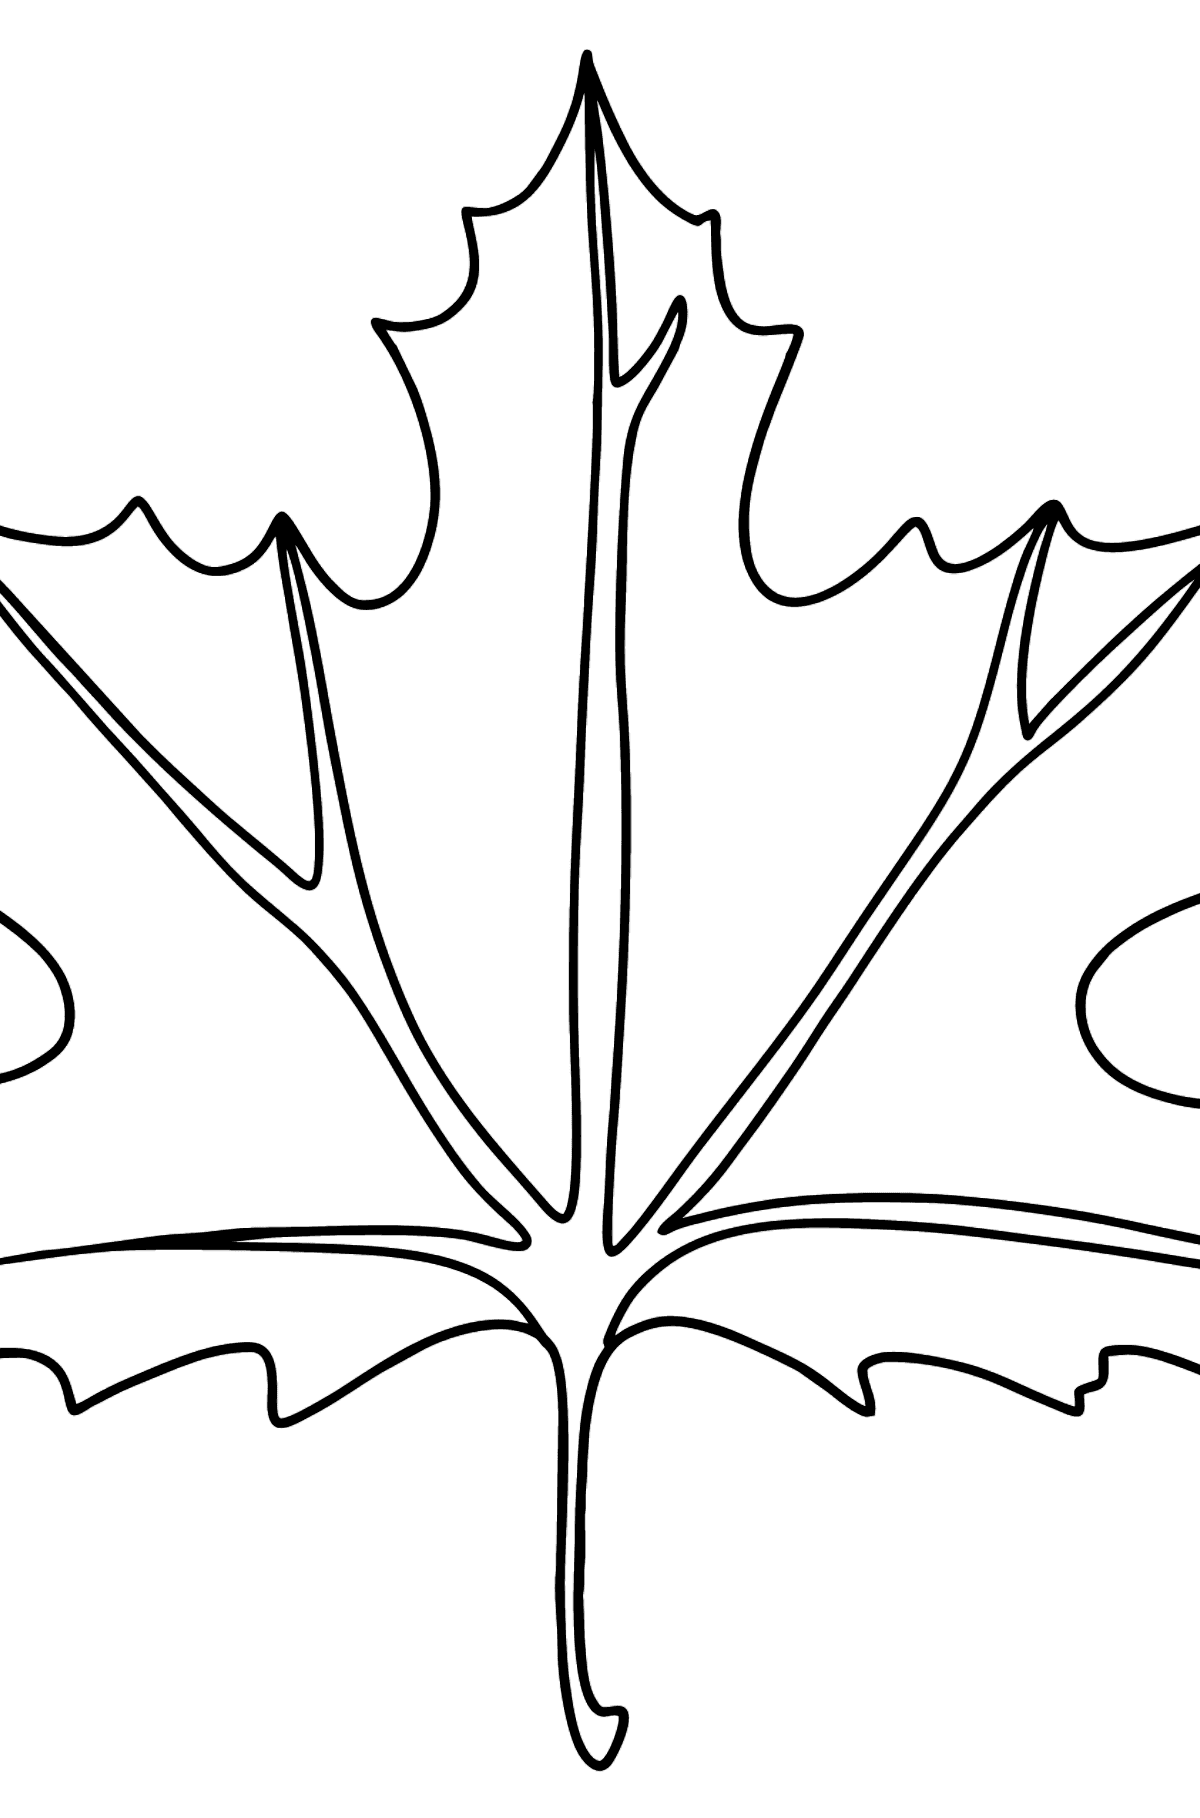 Maple Leaf coloring page - Coloring Pages for Kids